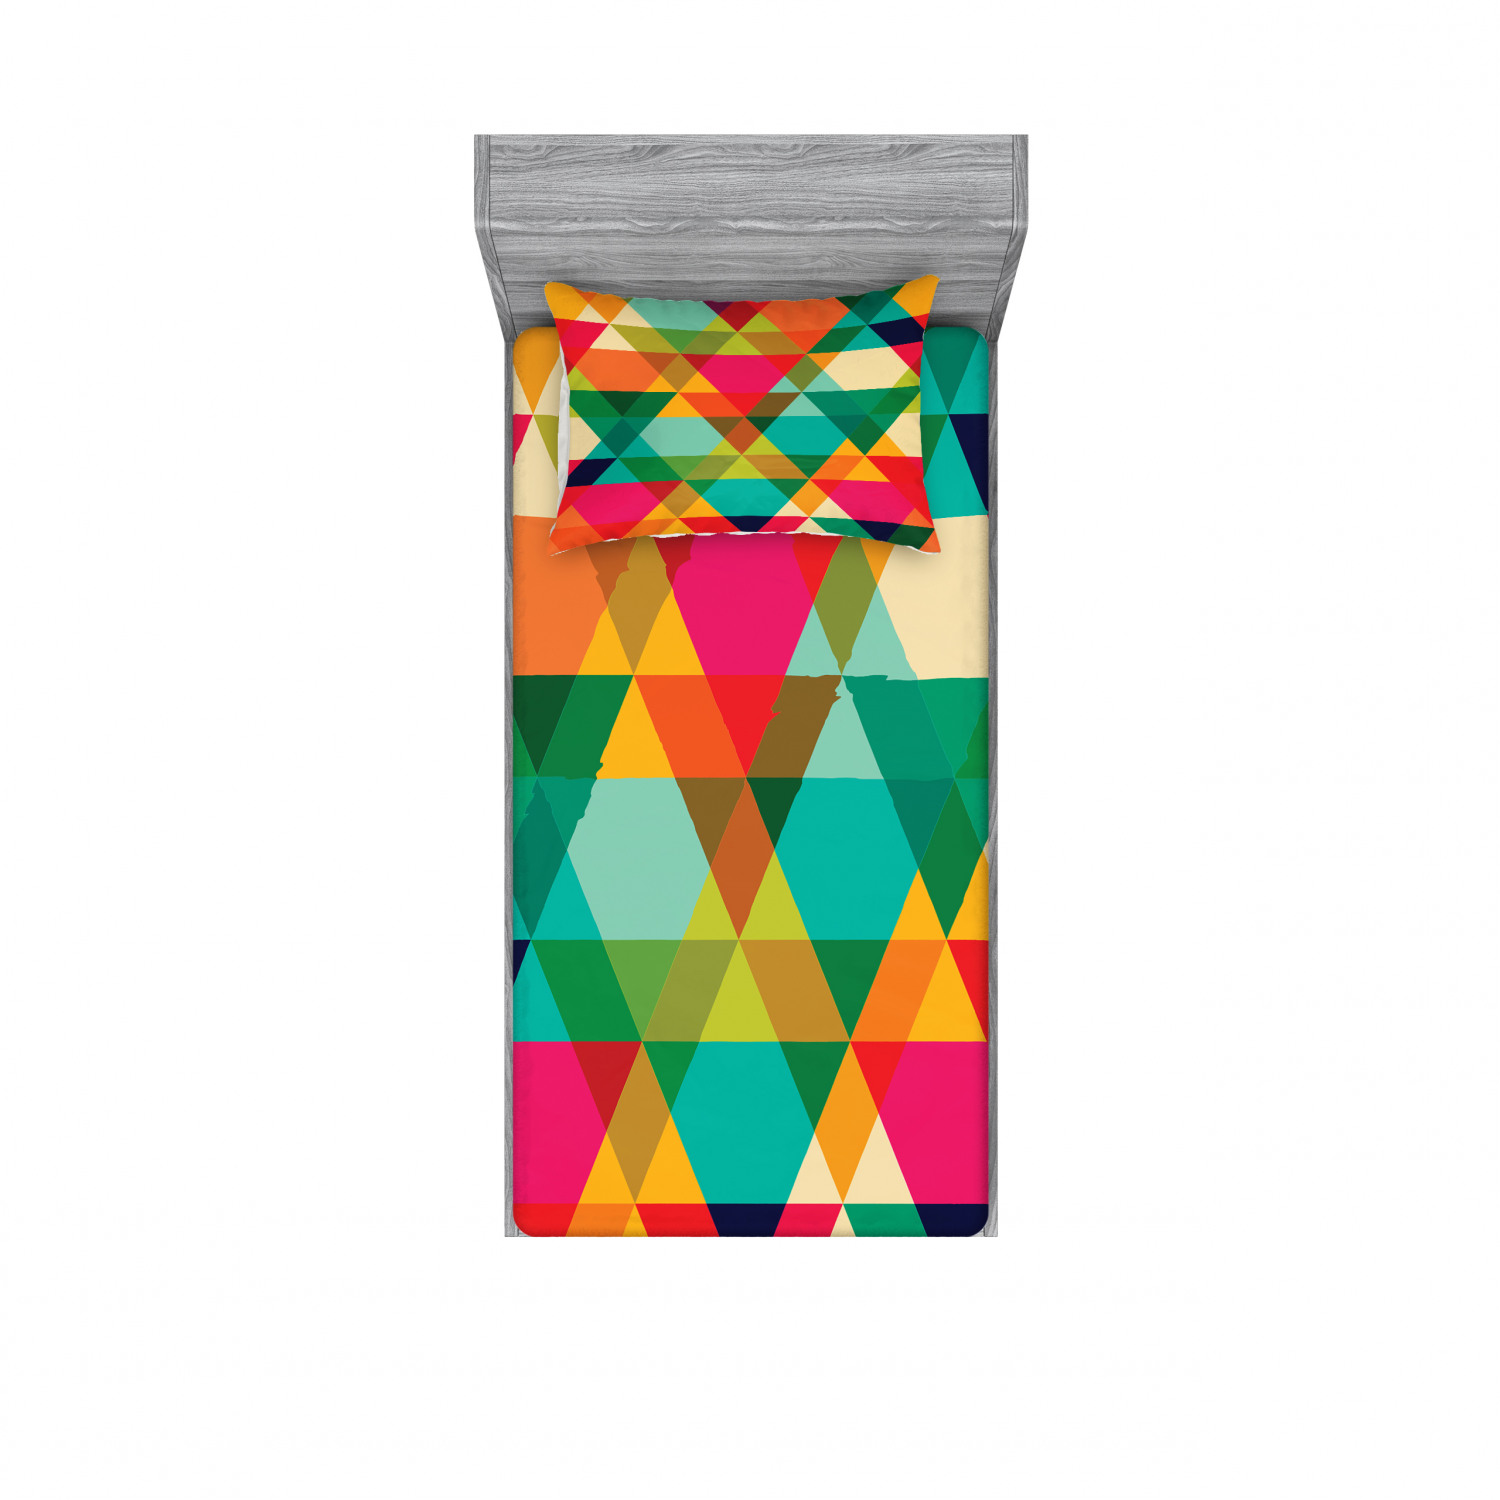 Geometric Bedding Set With Sheet Covers Abstract Geometric Pattern Vintage Inspired Retro Colors Old Style Graphic Art Printed Bedroom Decor 2 Shams 4 Sizes Multicolor By Ambesonne Walmart Com Walmart Com